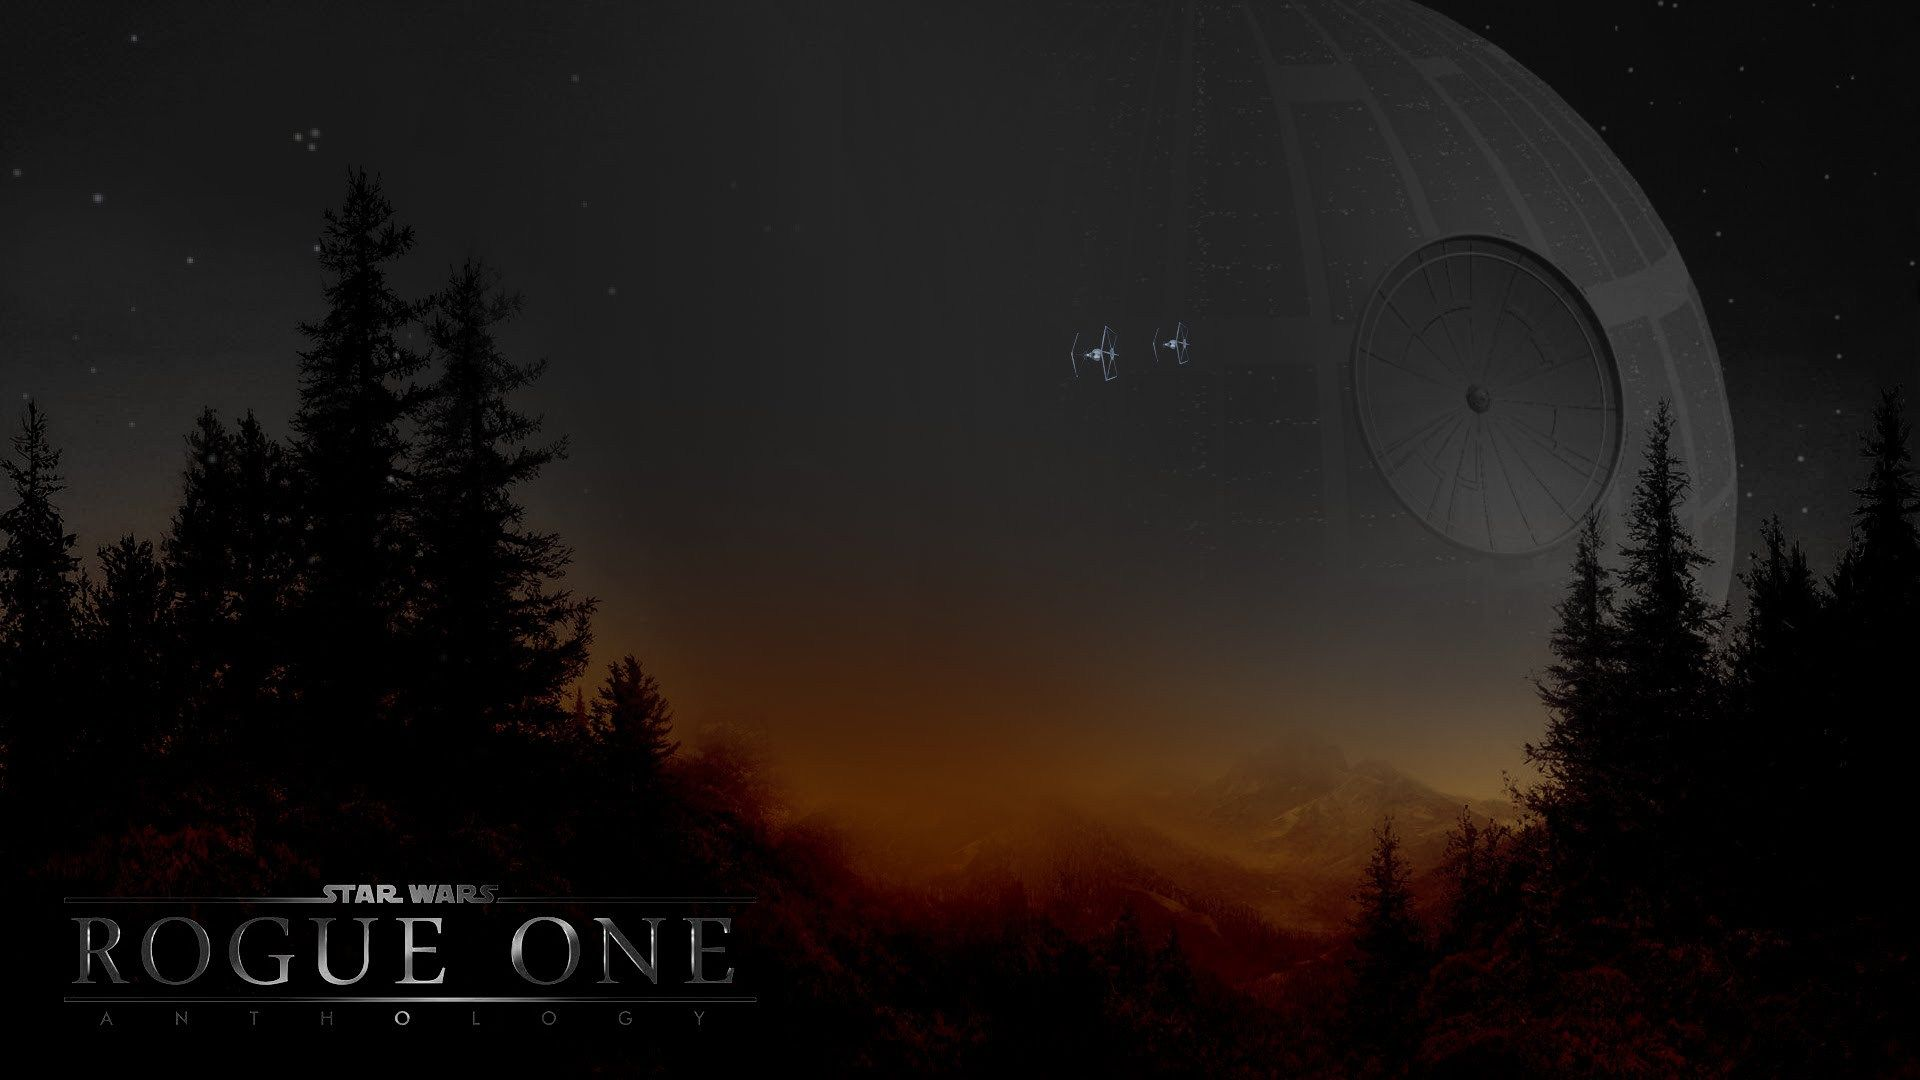 Star Wars Death Star Wallpaper Posted By Ethan Mercado